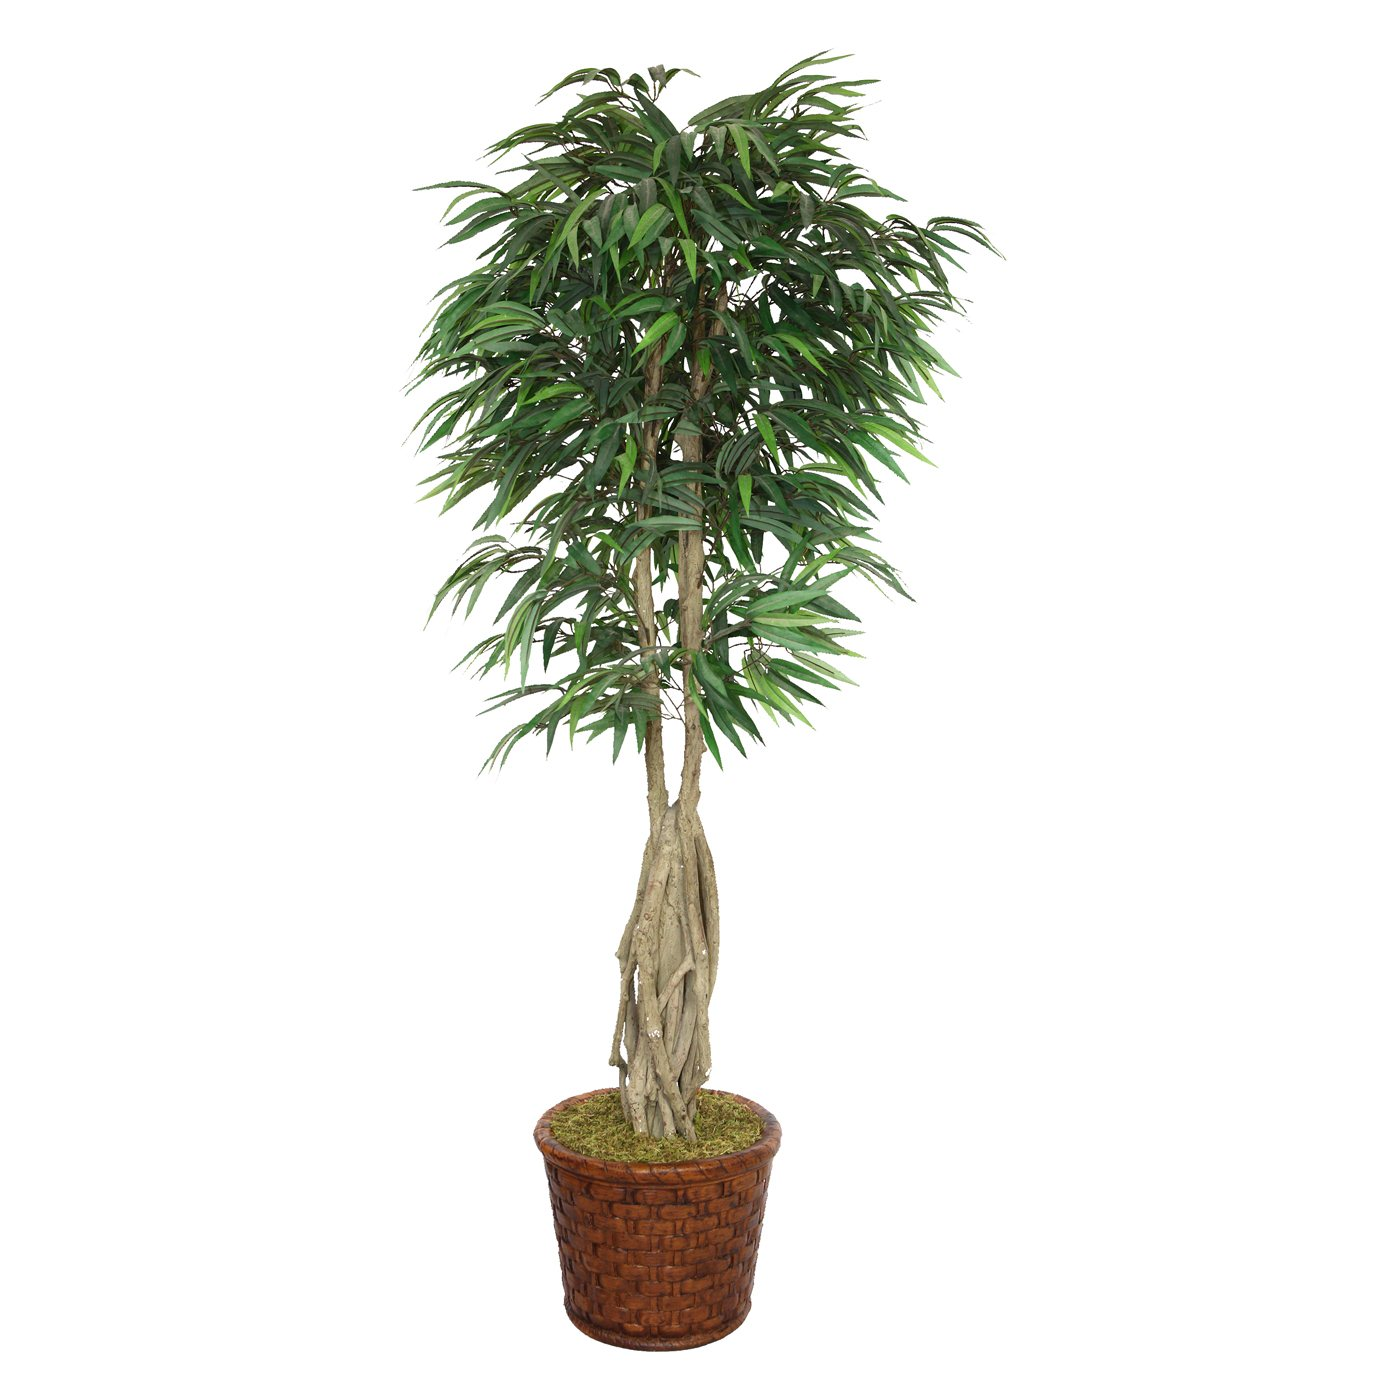 83-in Tall Willow Ficus with Multiple Trunks in 17-in Fiberstone Planter